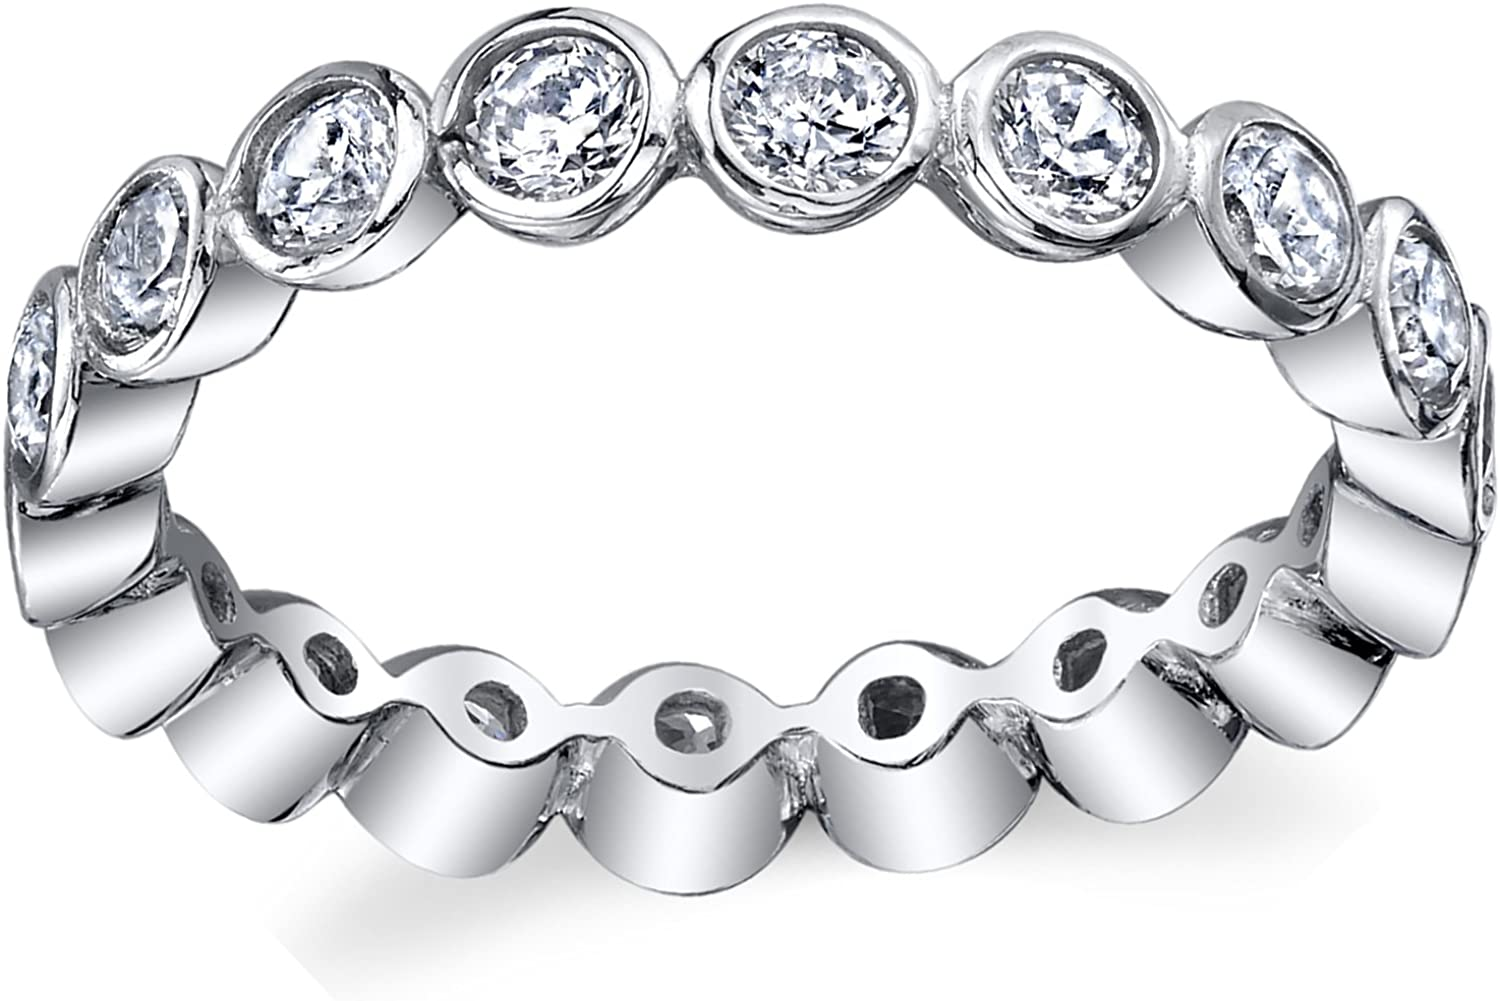 Sterling Silver 925 Bezel Set Eternity Ring Engagement Wedding Band With Cubic Zirconia CZ